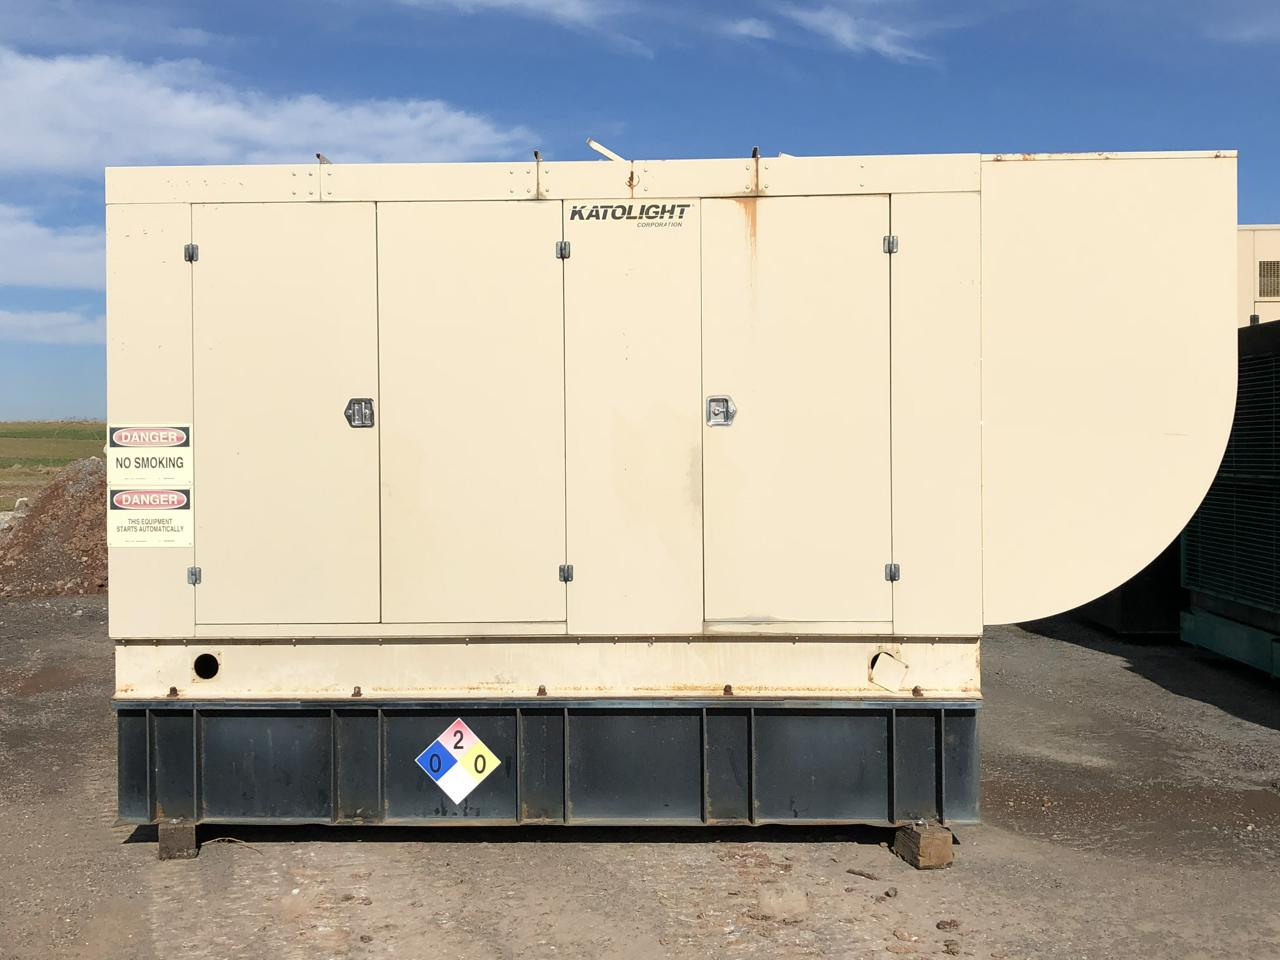 125 Kw Cummins Onan Generator Set 12 Lead Reconnectable 1 3 Phase Katolight Wiring Diagram 300 500 Gallon Base Fuel Tank Sound Attenuated